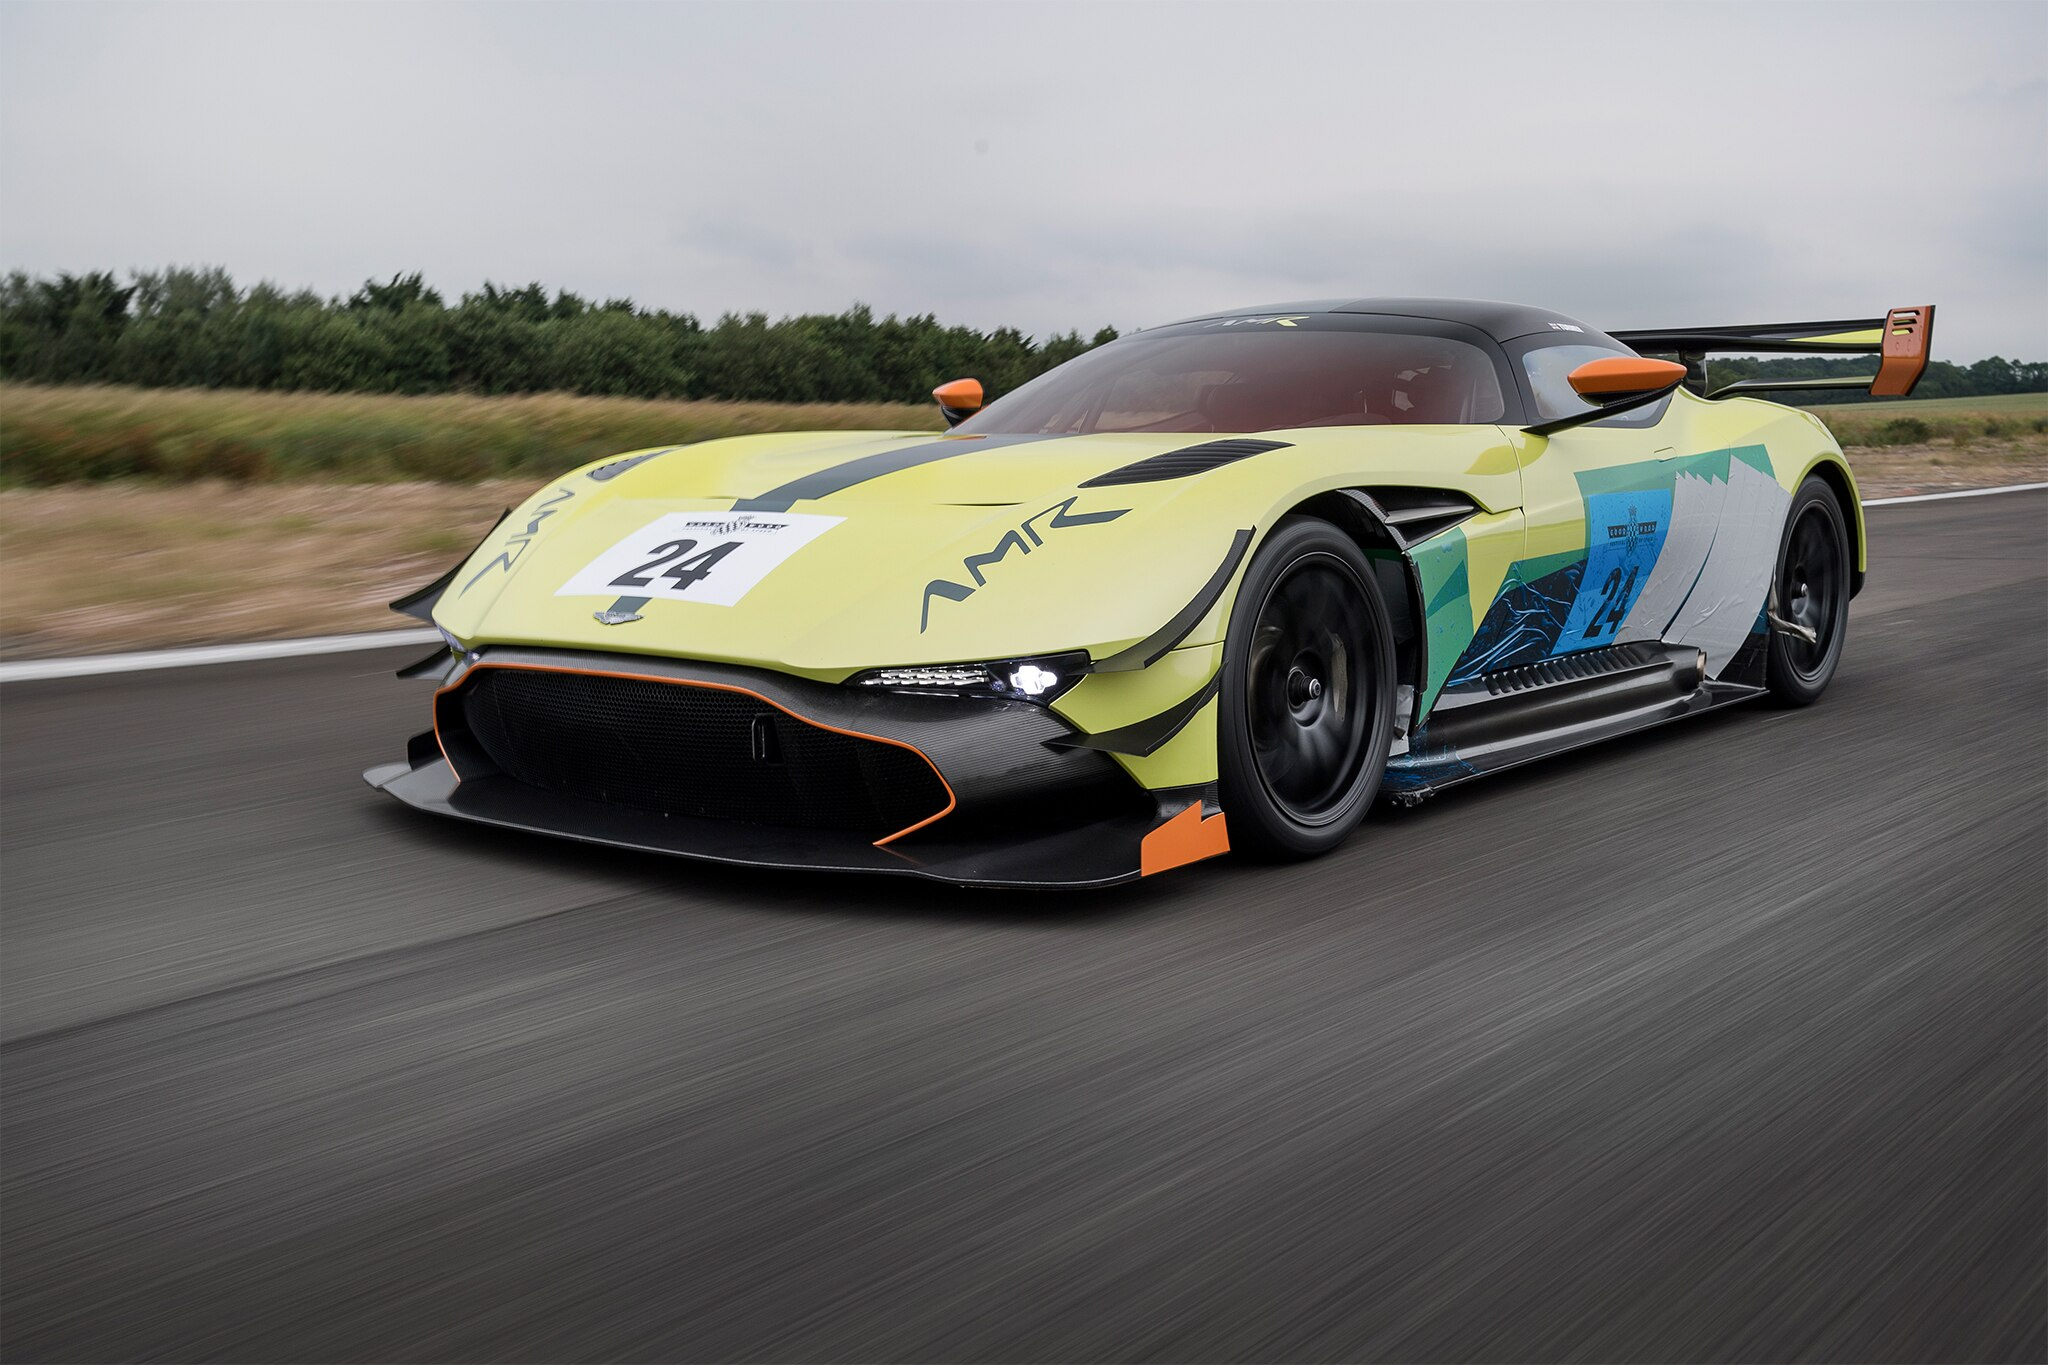 First Drive: Aston Martin Vulcan AMR Pro Is Even More